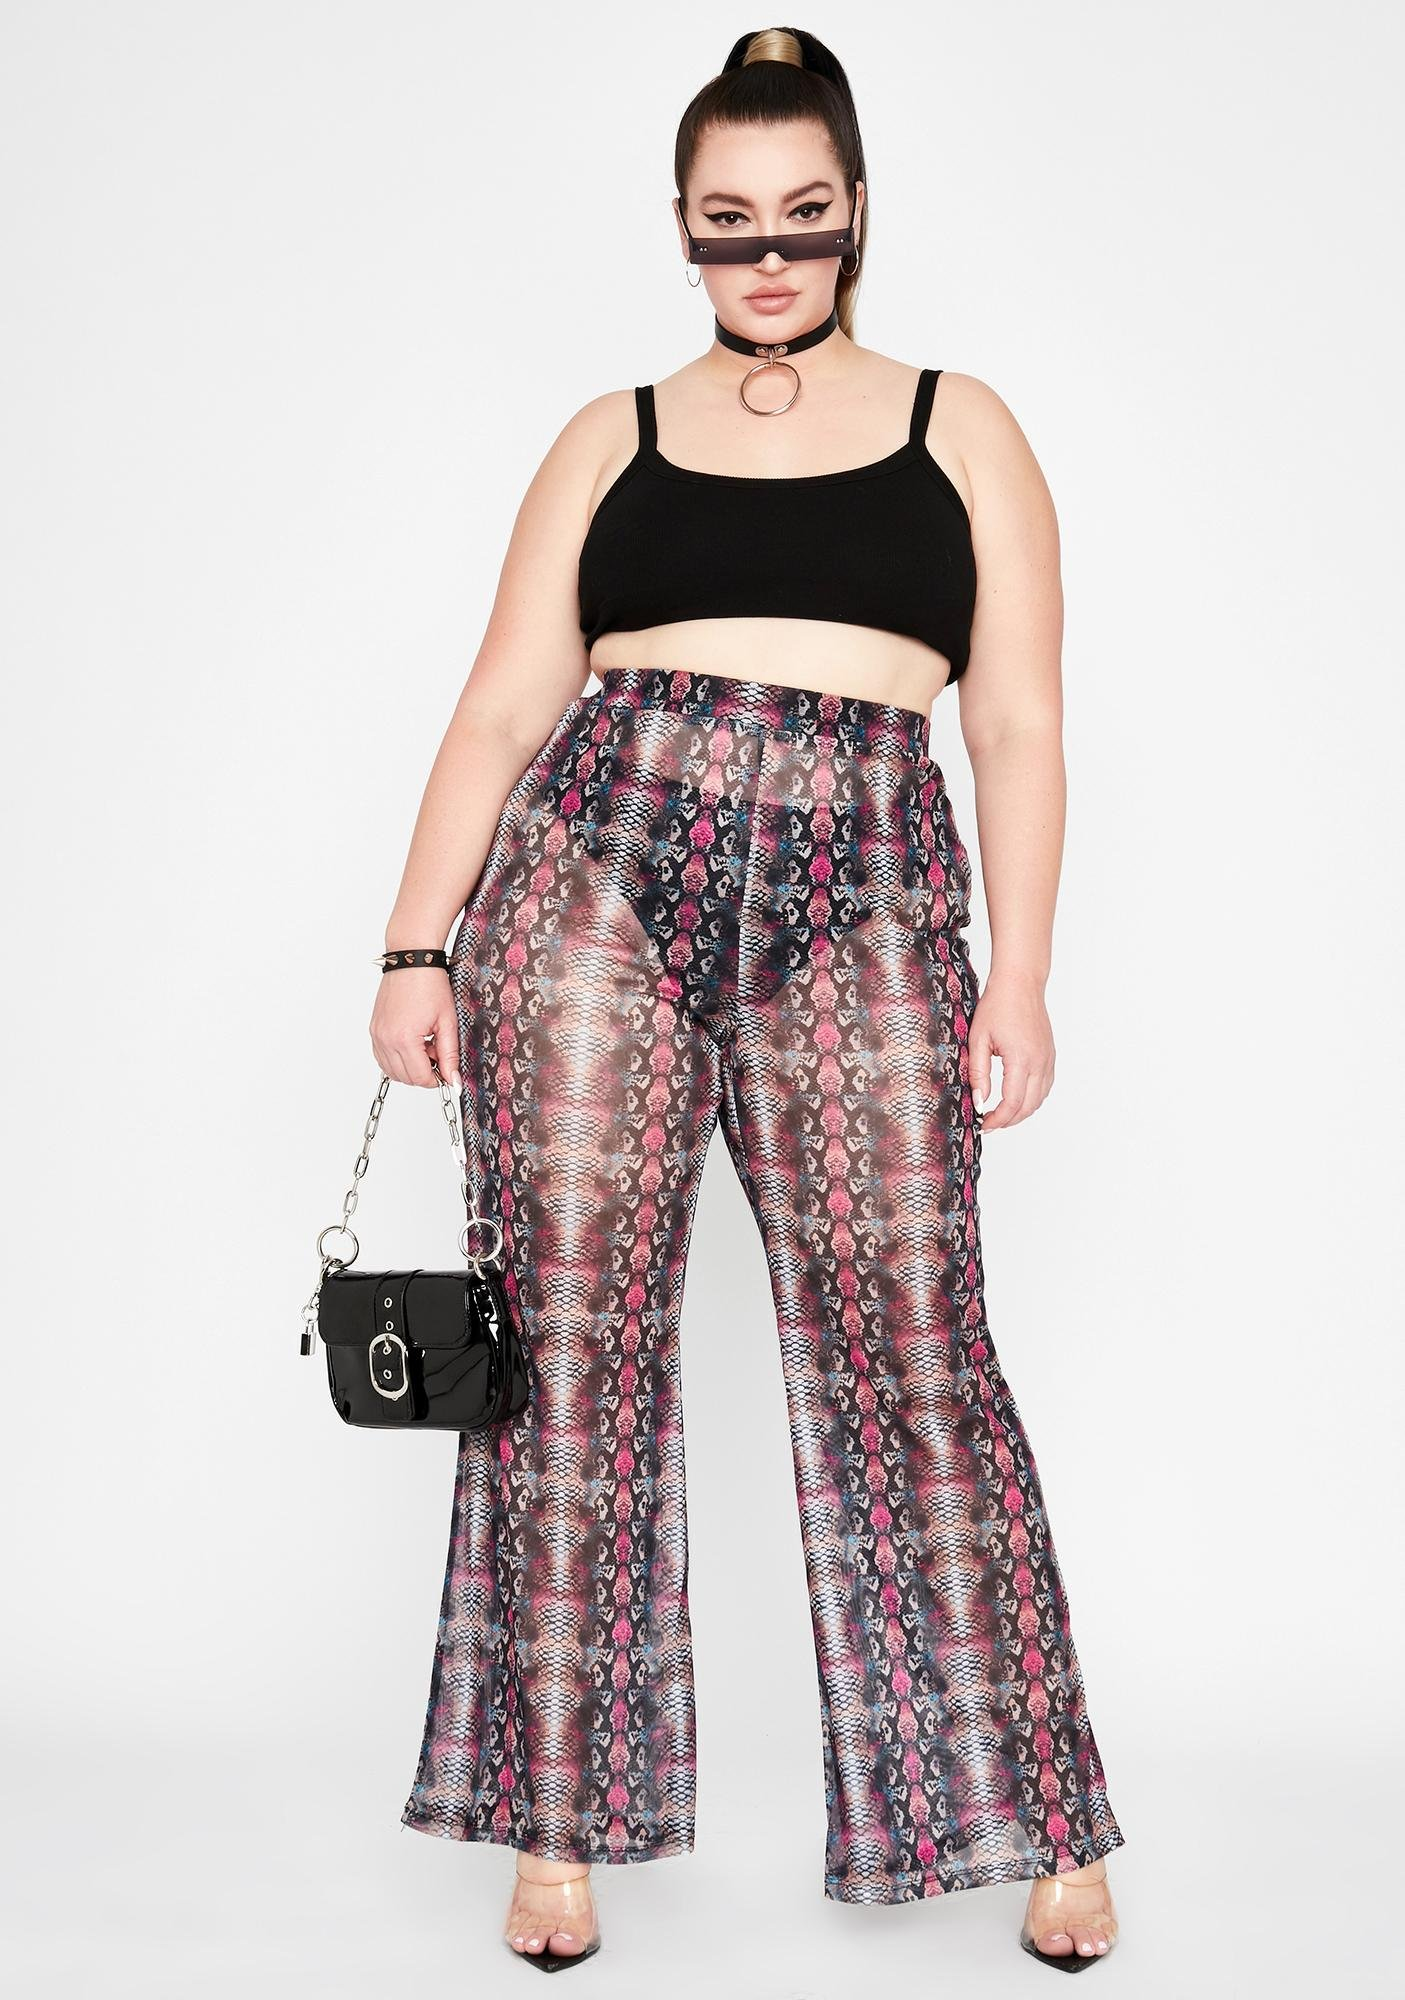 Her Poisonous Potential Sheer Pants